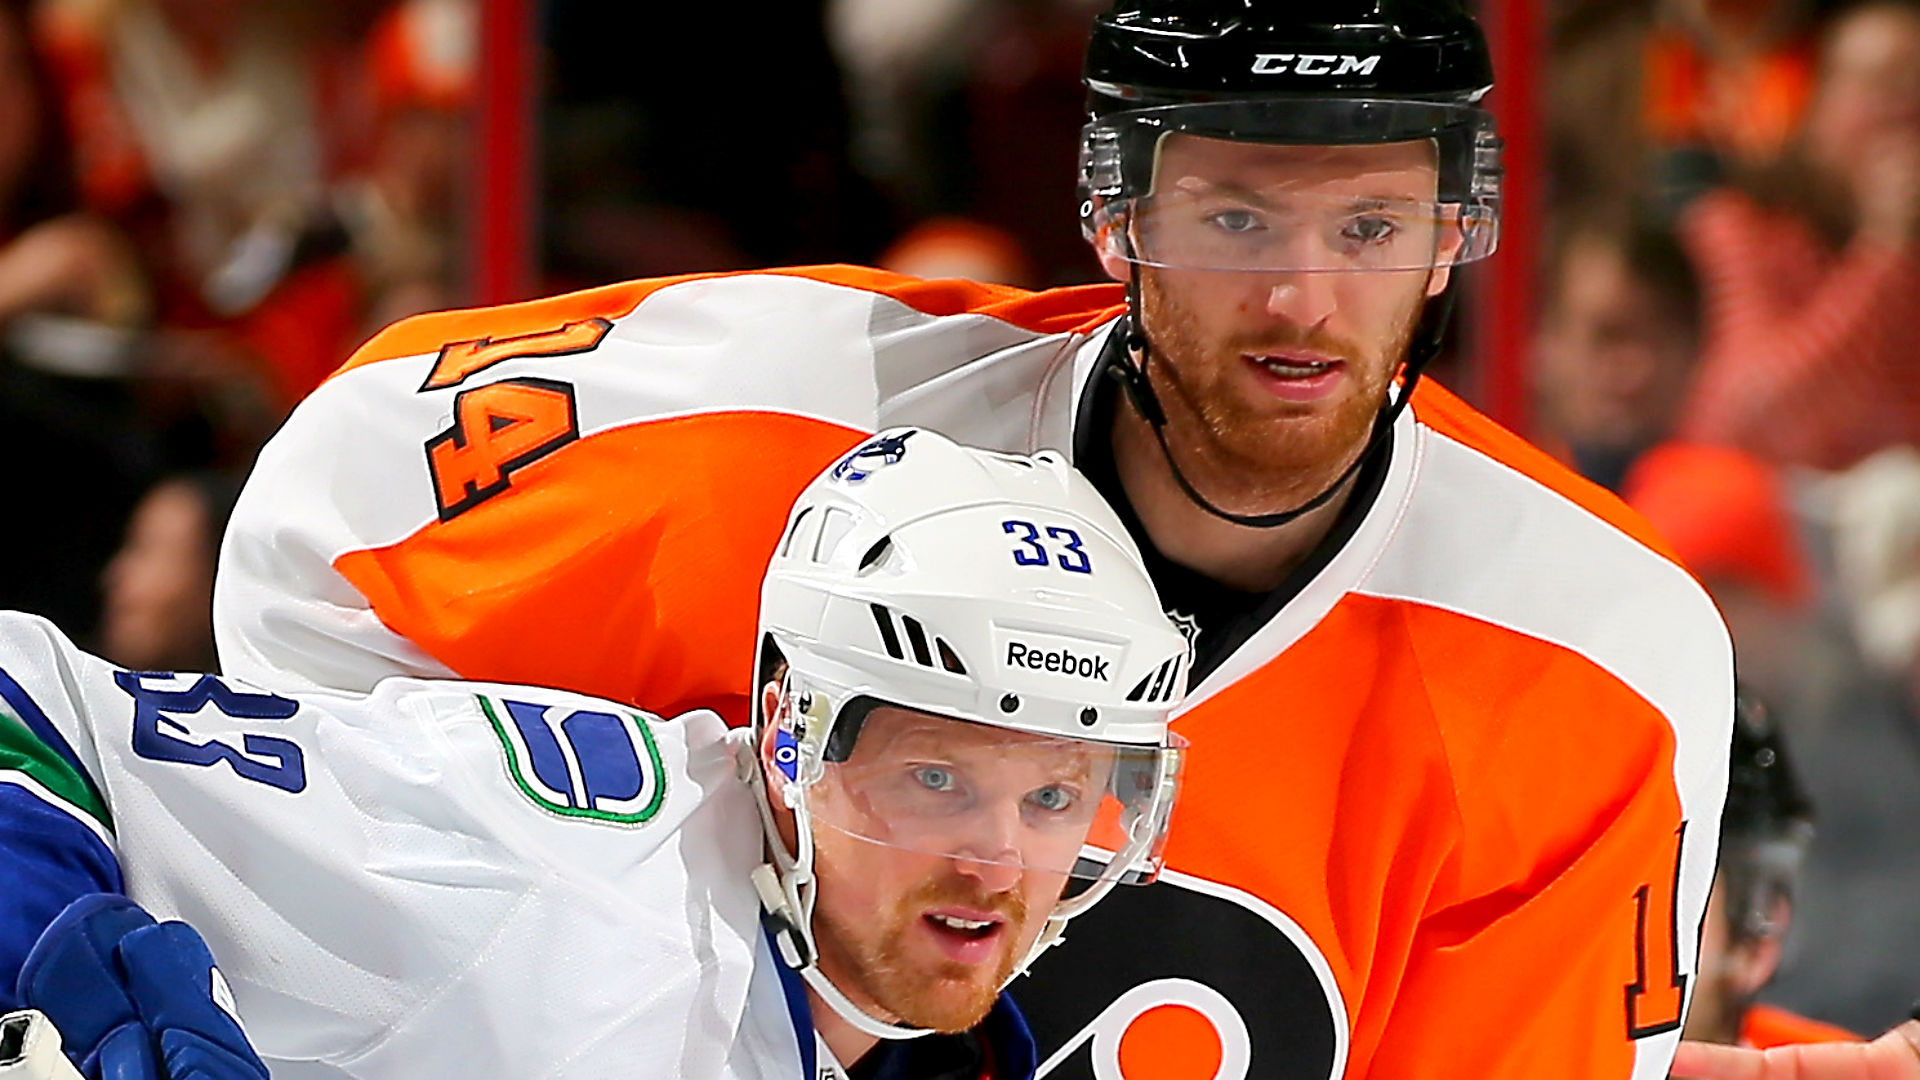 Big contract brings rising expectations for Flyers' Sean Couturier